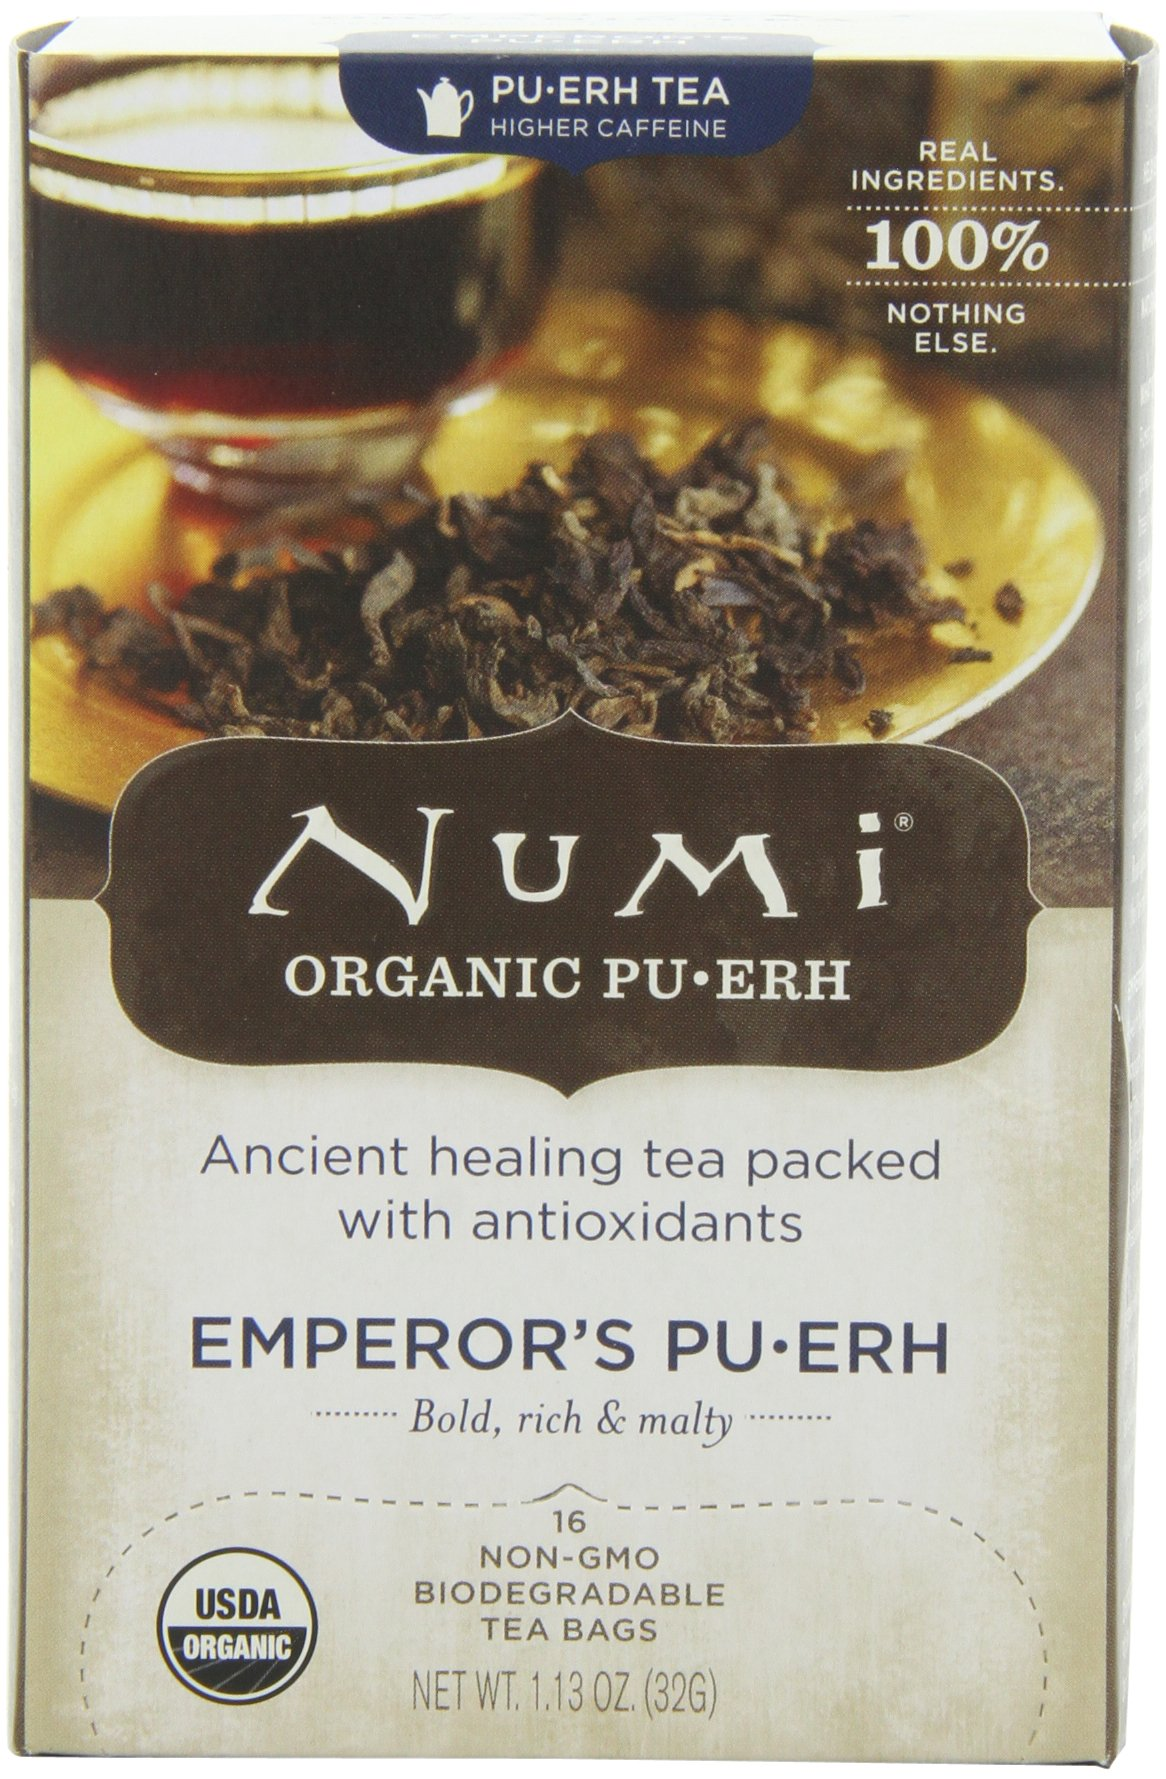 Numi Organic Tea Emperor's Pu-erh, Full Leaf Black Pu-erh Tea, 16-Count non-GMO Tea Bags (Pack of 2)